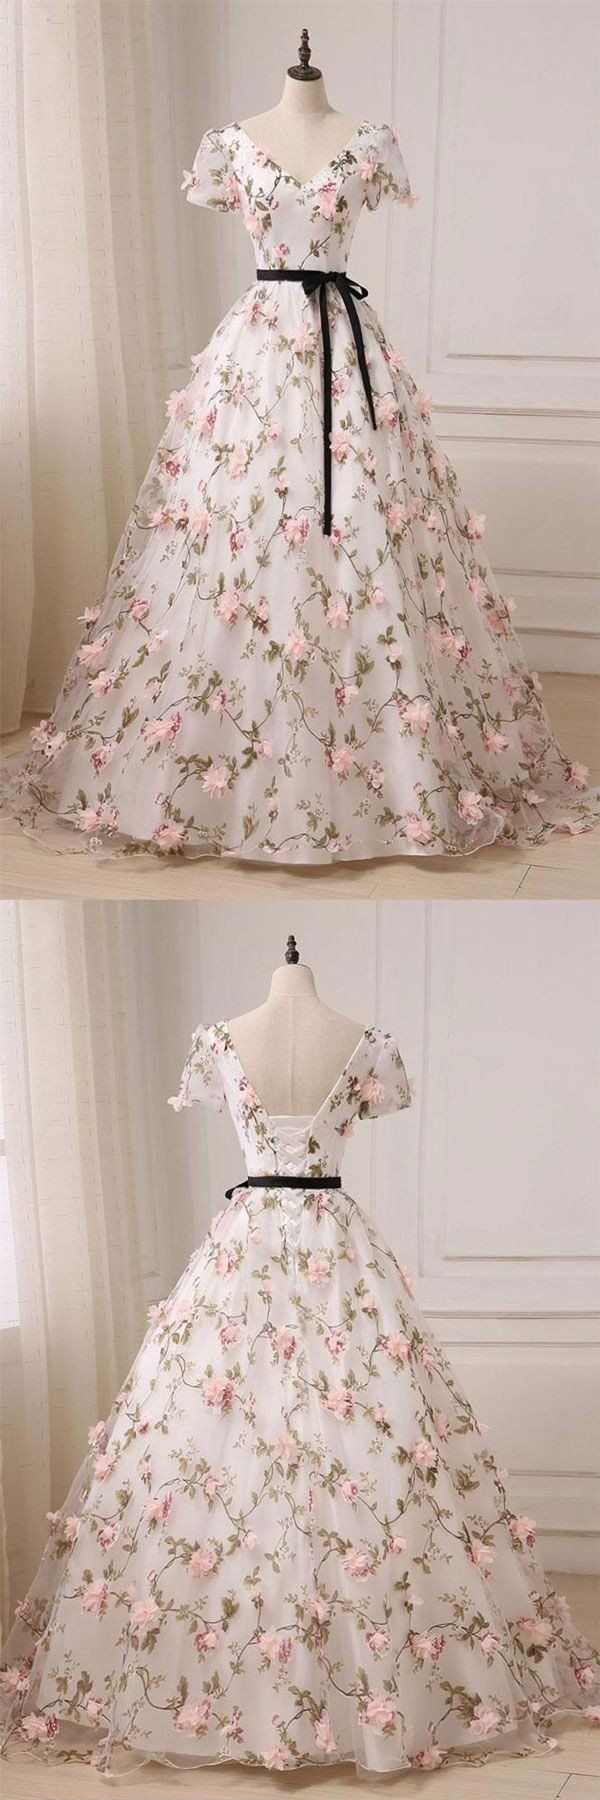 Ball gown prom dresses vneck floorlength floral long lace prom